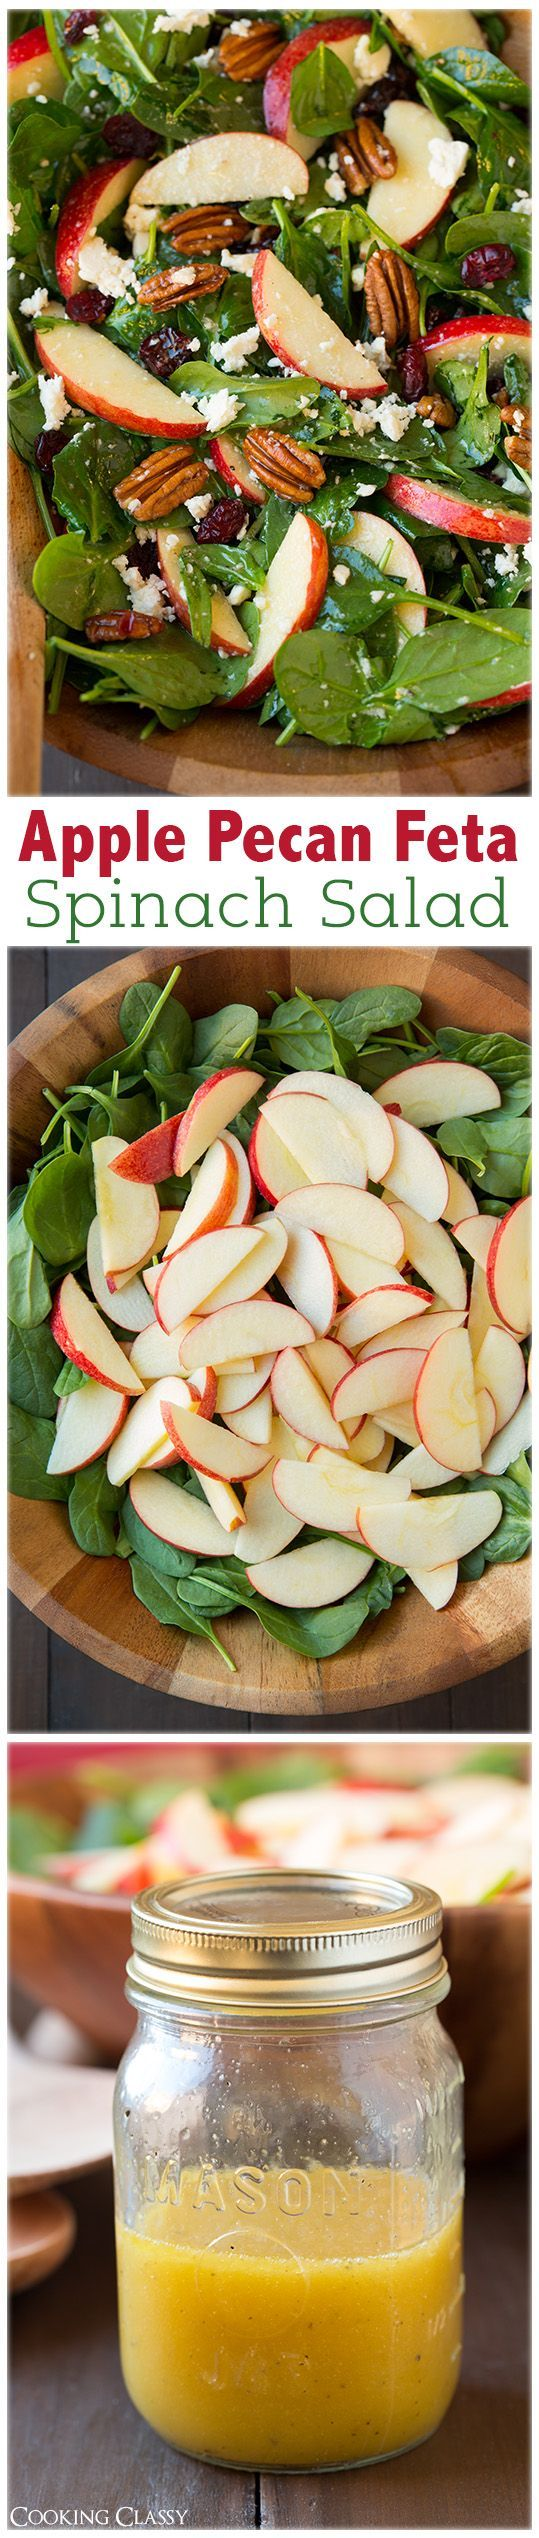 Apple Pecan Feta Spinach Salad with Maple Cider Vinaigrette - this salad is a must try recipe! Highly recommend adding the bacon too. Tried it, loved it on my Weekly Pinterest Meal Planner Round Up /frostedevents/ http://www.frostedevents.com